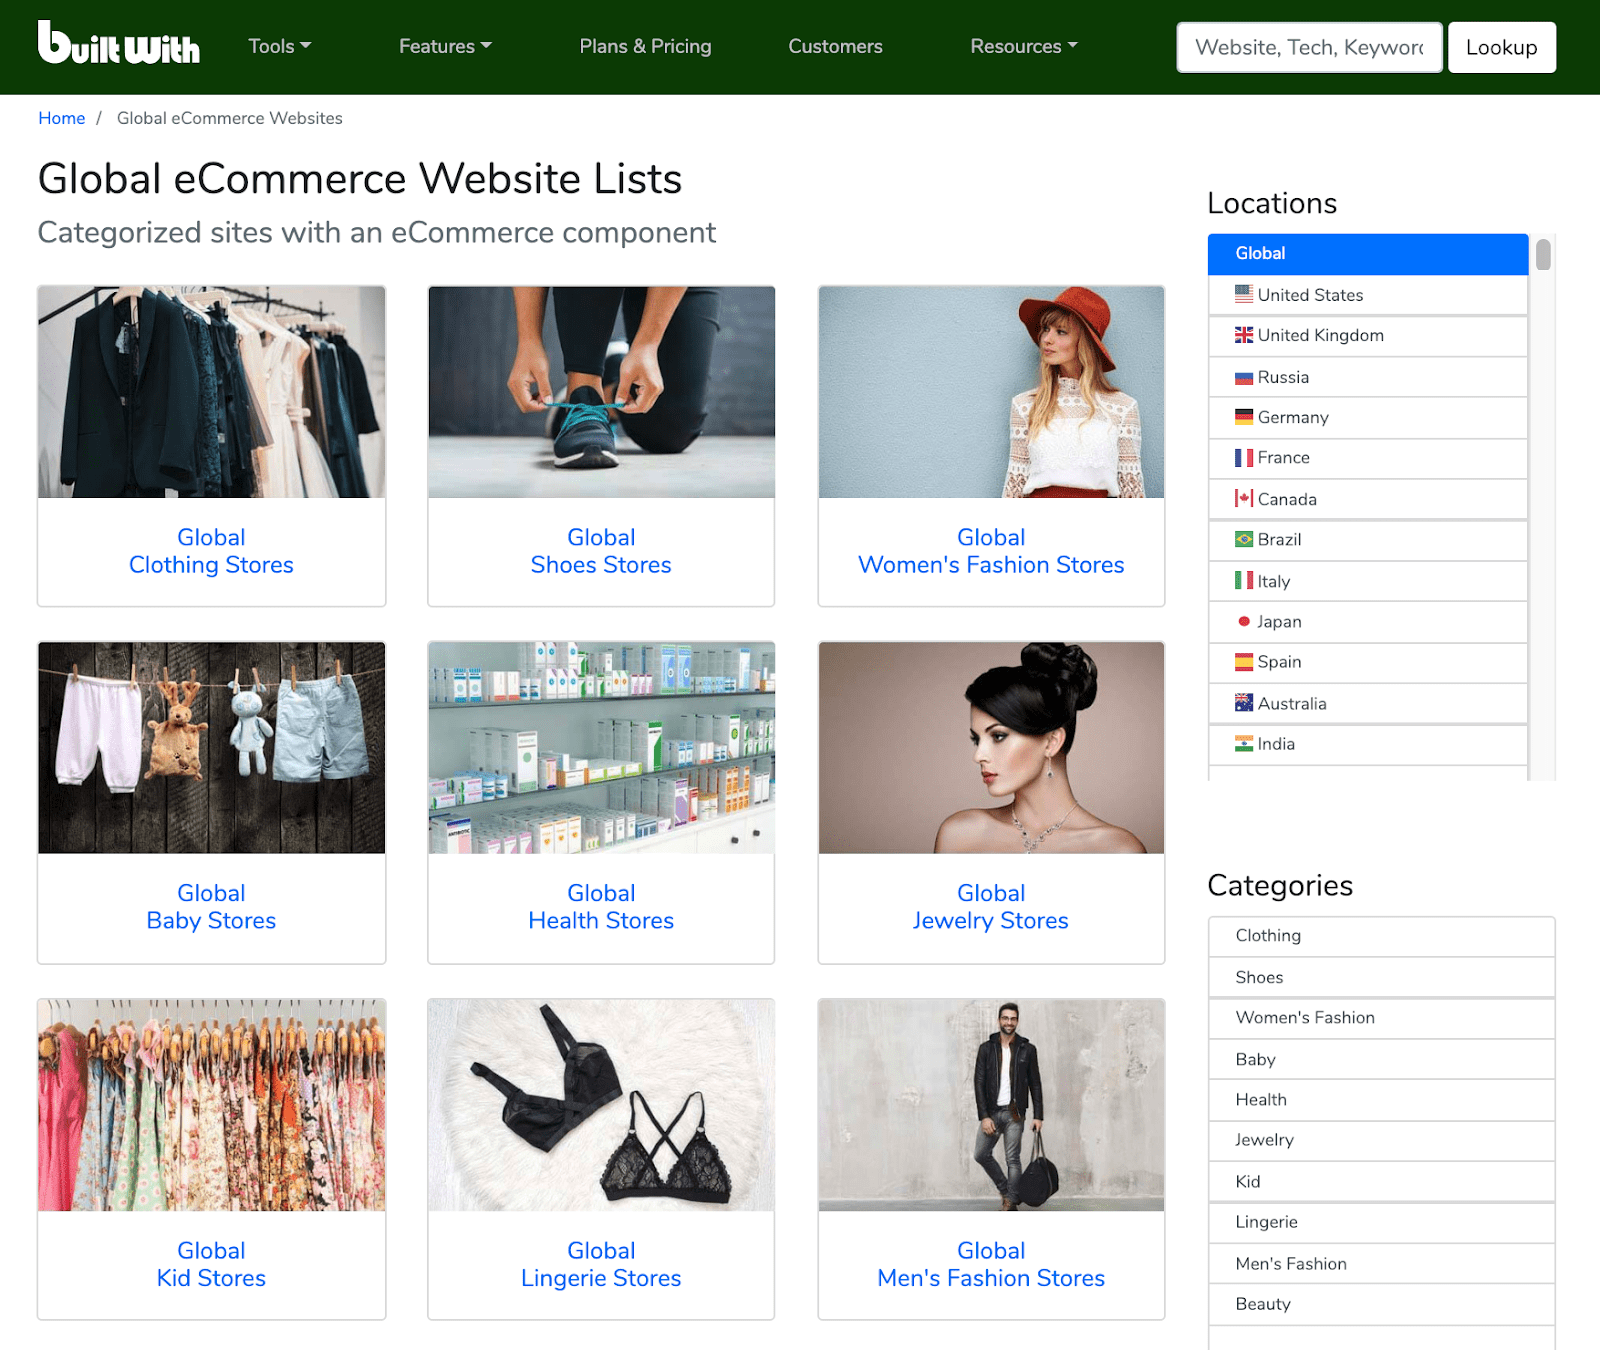 built-with-ecommerce-sites